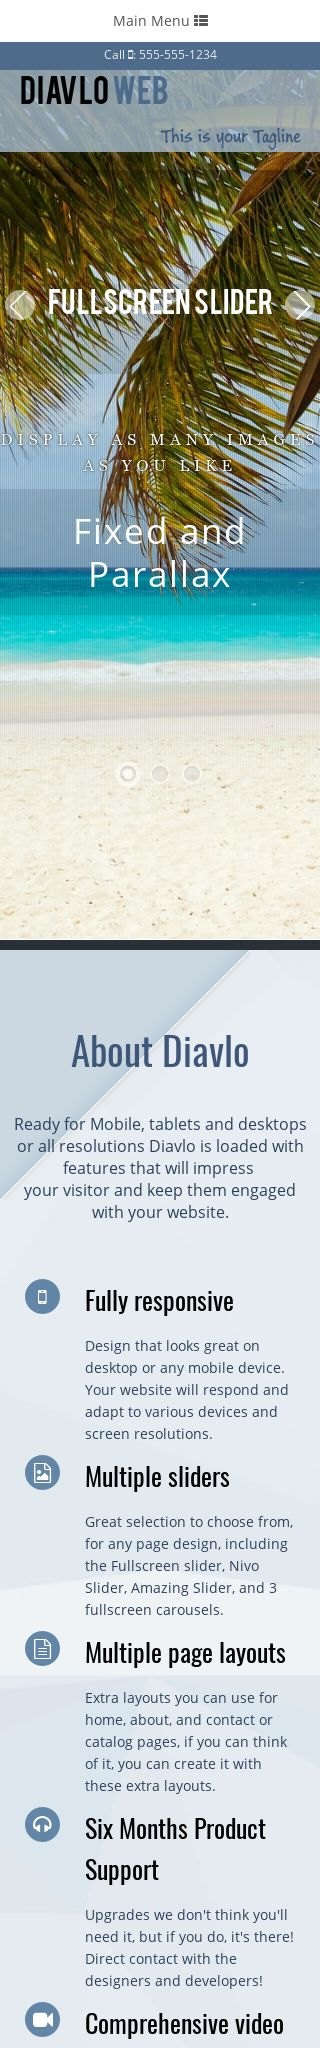 Mobile: Travel Dreamweaver Template